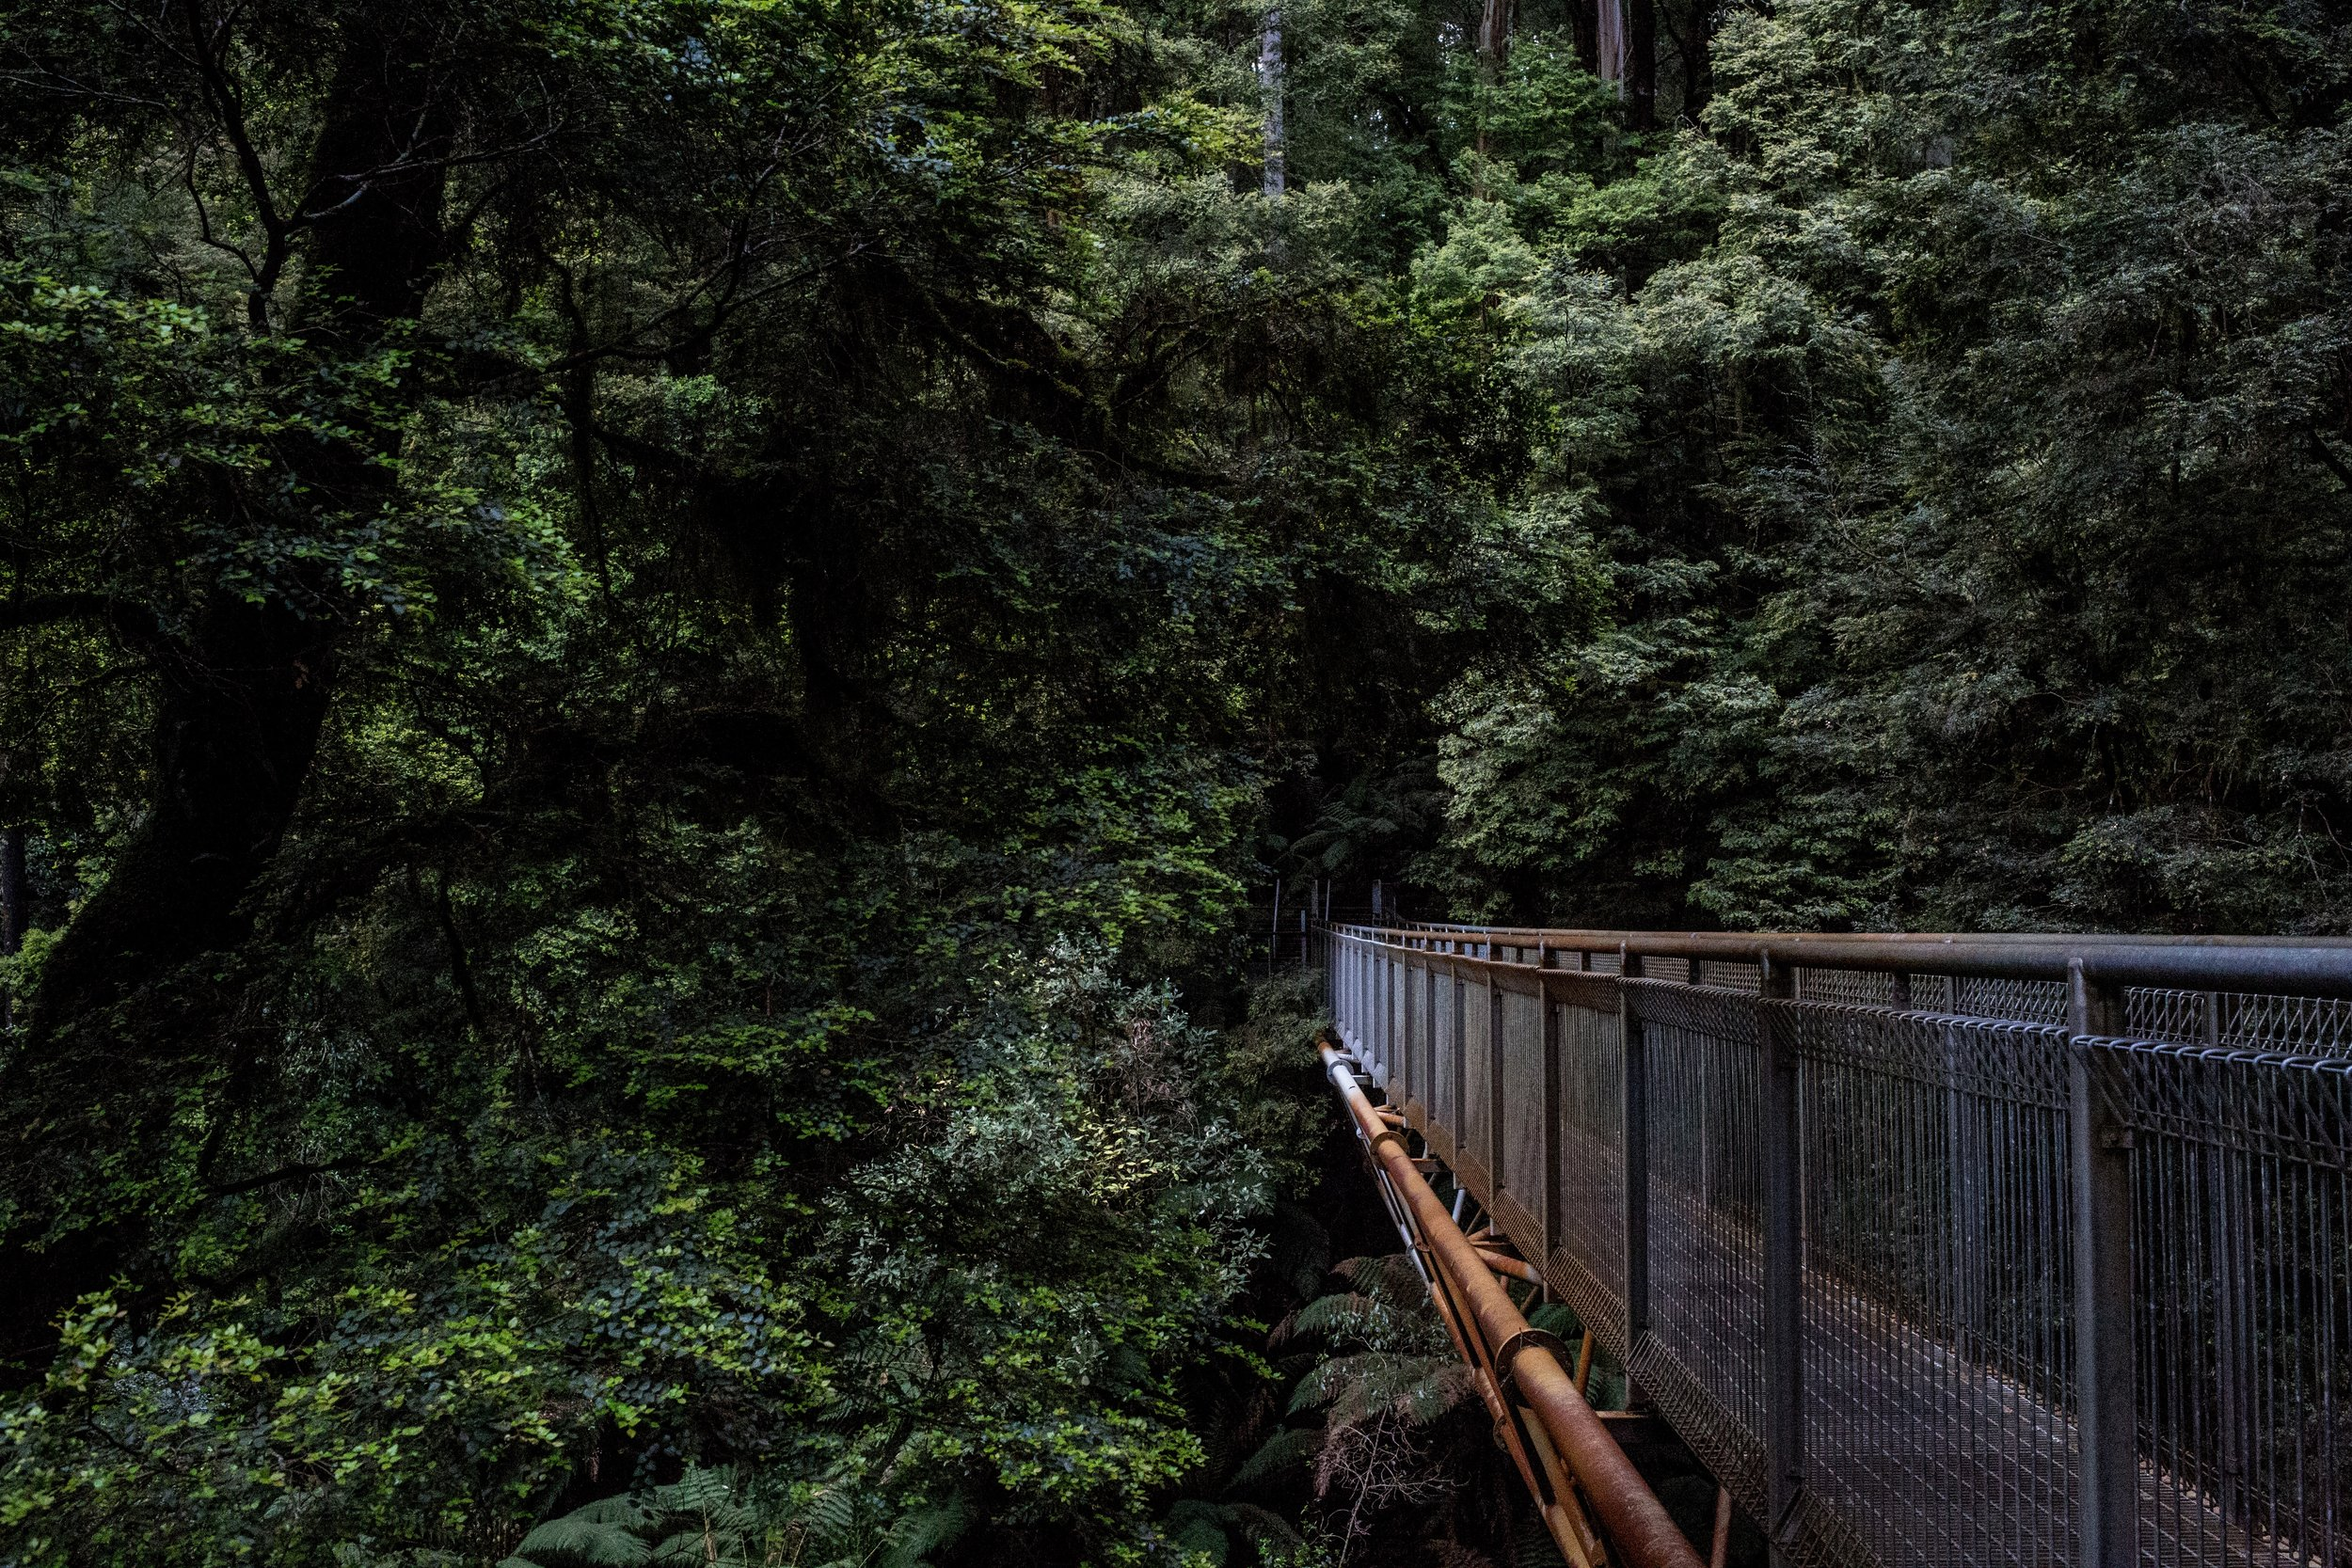 A peaceful place to visit is the rainforest walk near Otway National Park.